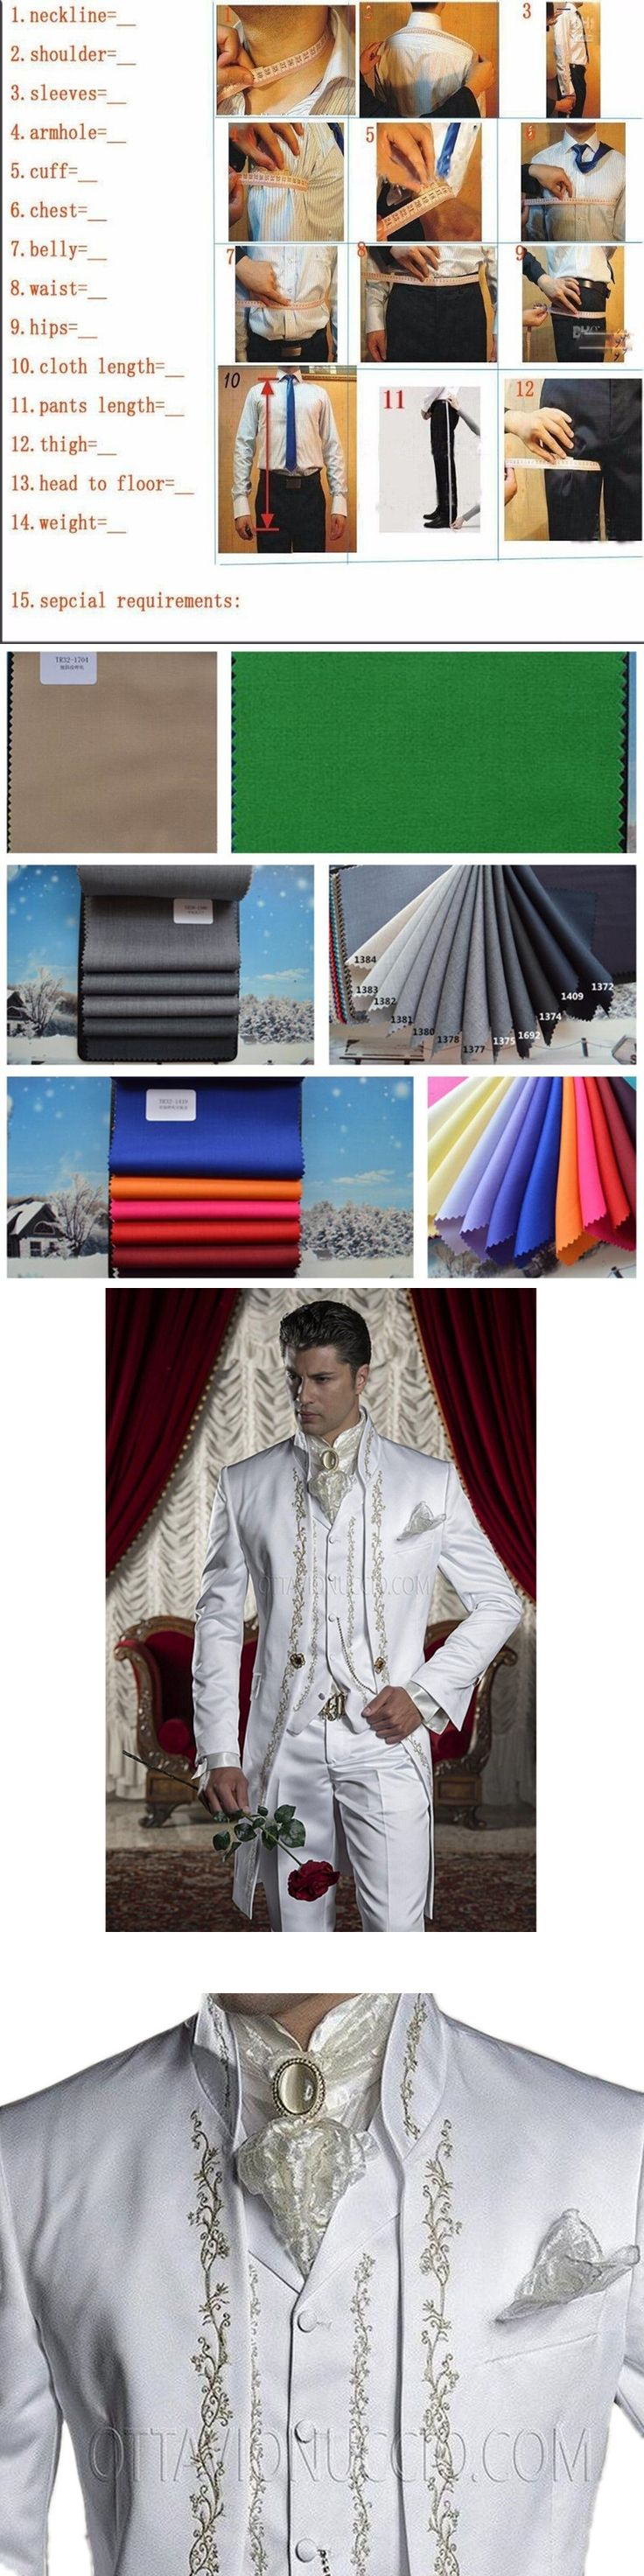 Fashionable men's suits MENS WHITE TAILCOAT EMBROIDERY MORNING SUIT TAILS JACKET HIGH QUALITY Tailored suits